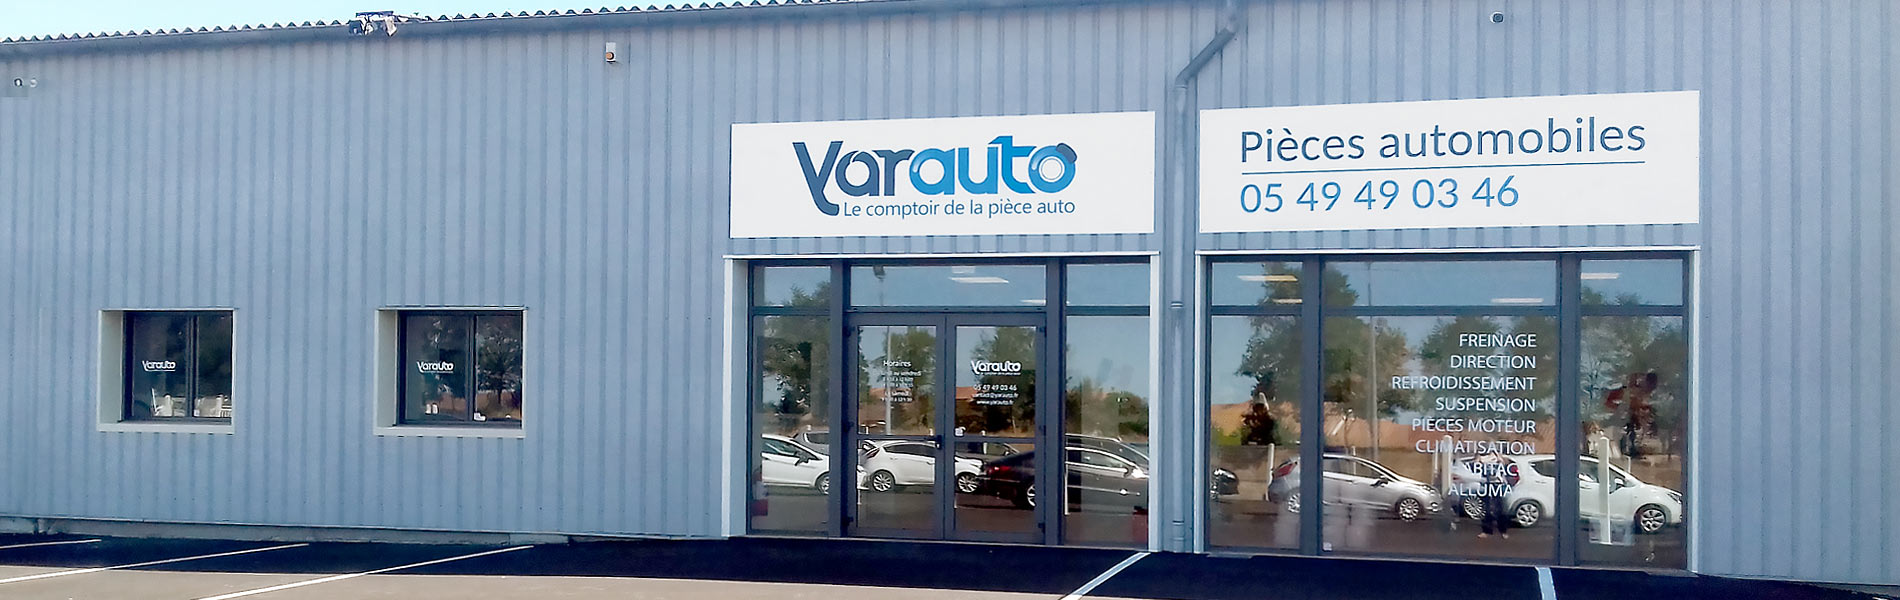 yarauto magasin